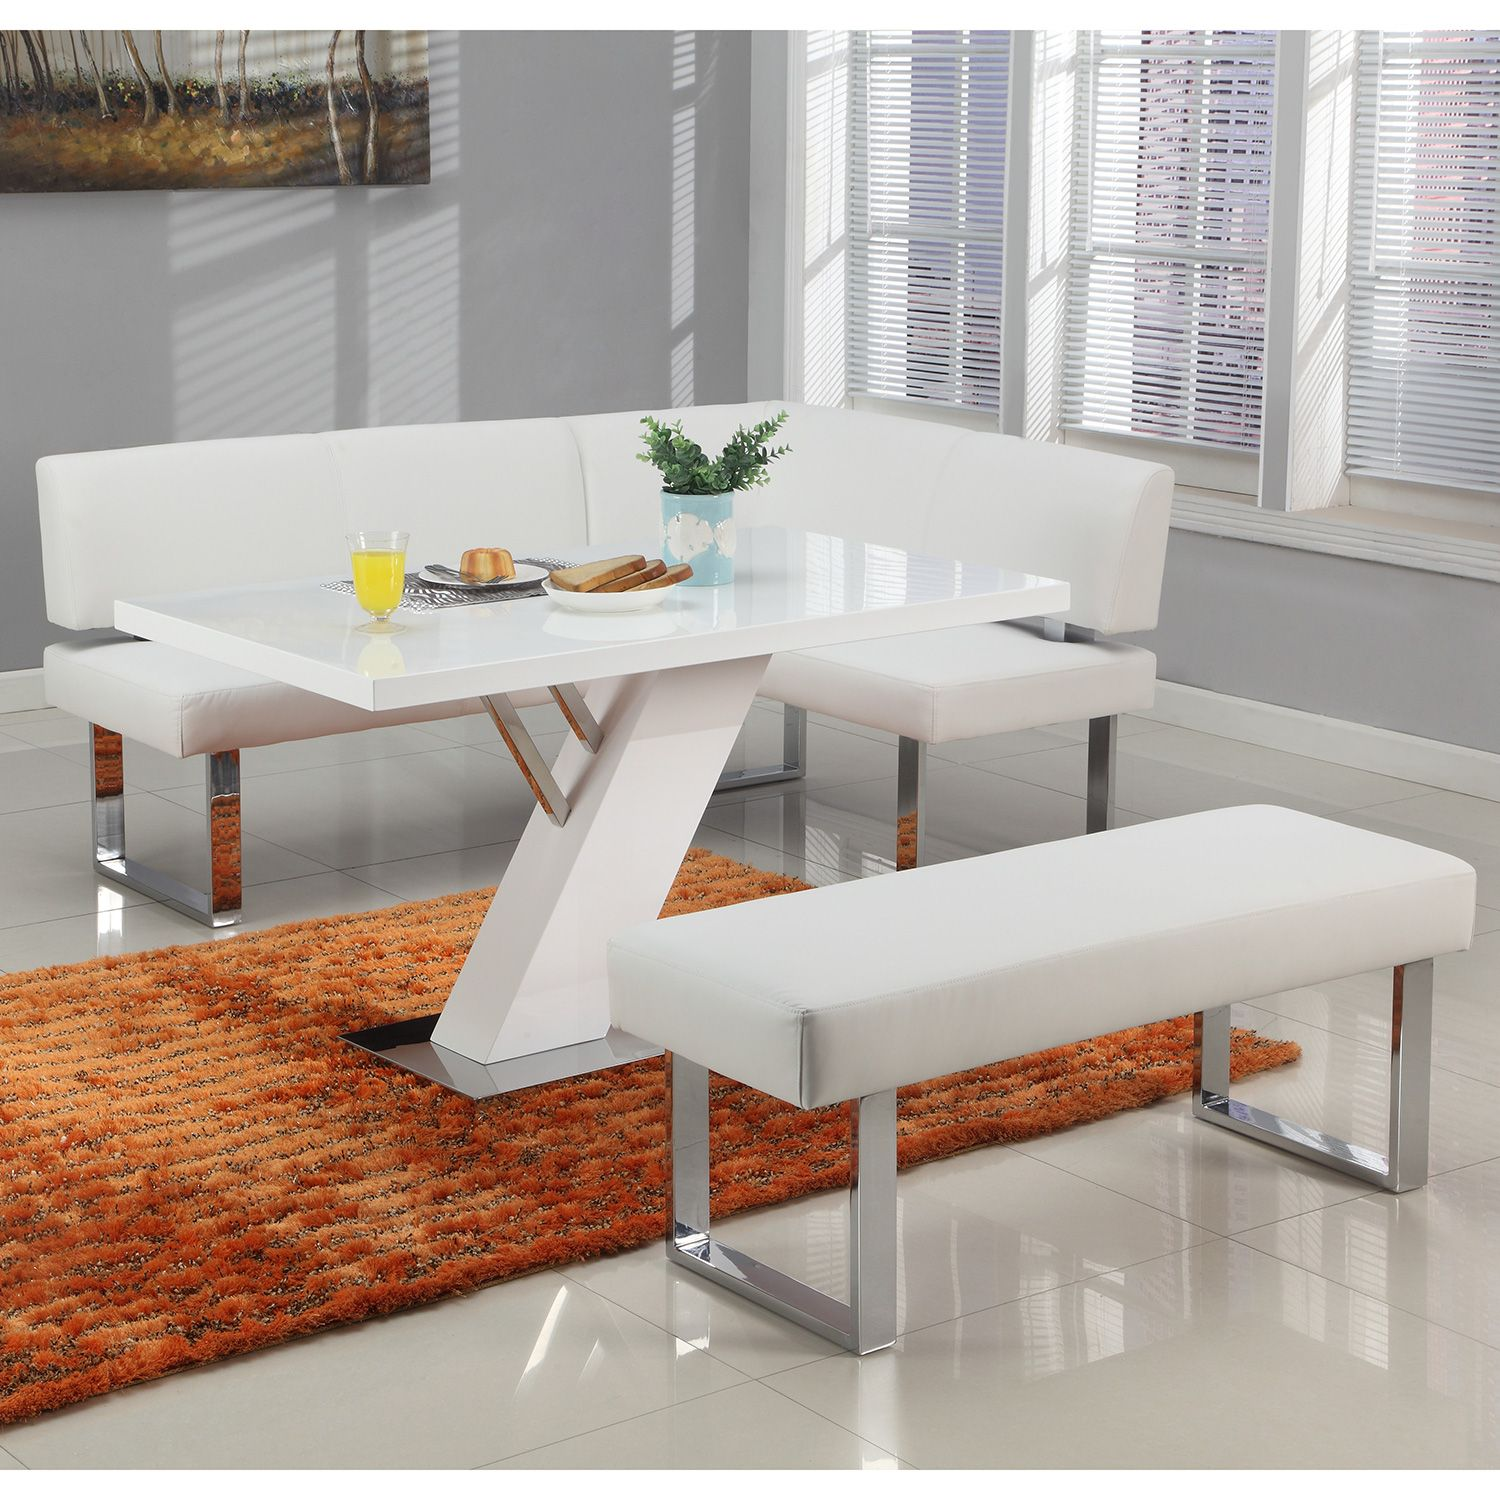 Chintaly Imports LINDENDTBMT+NOOK+BENCH Linded Dining